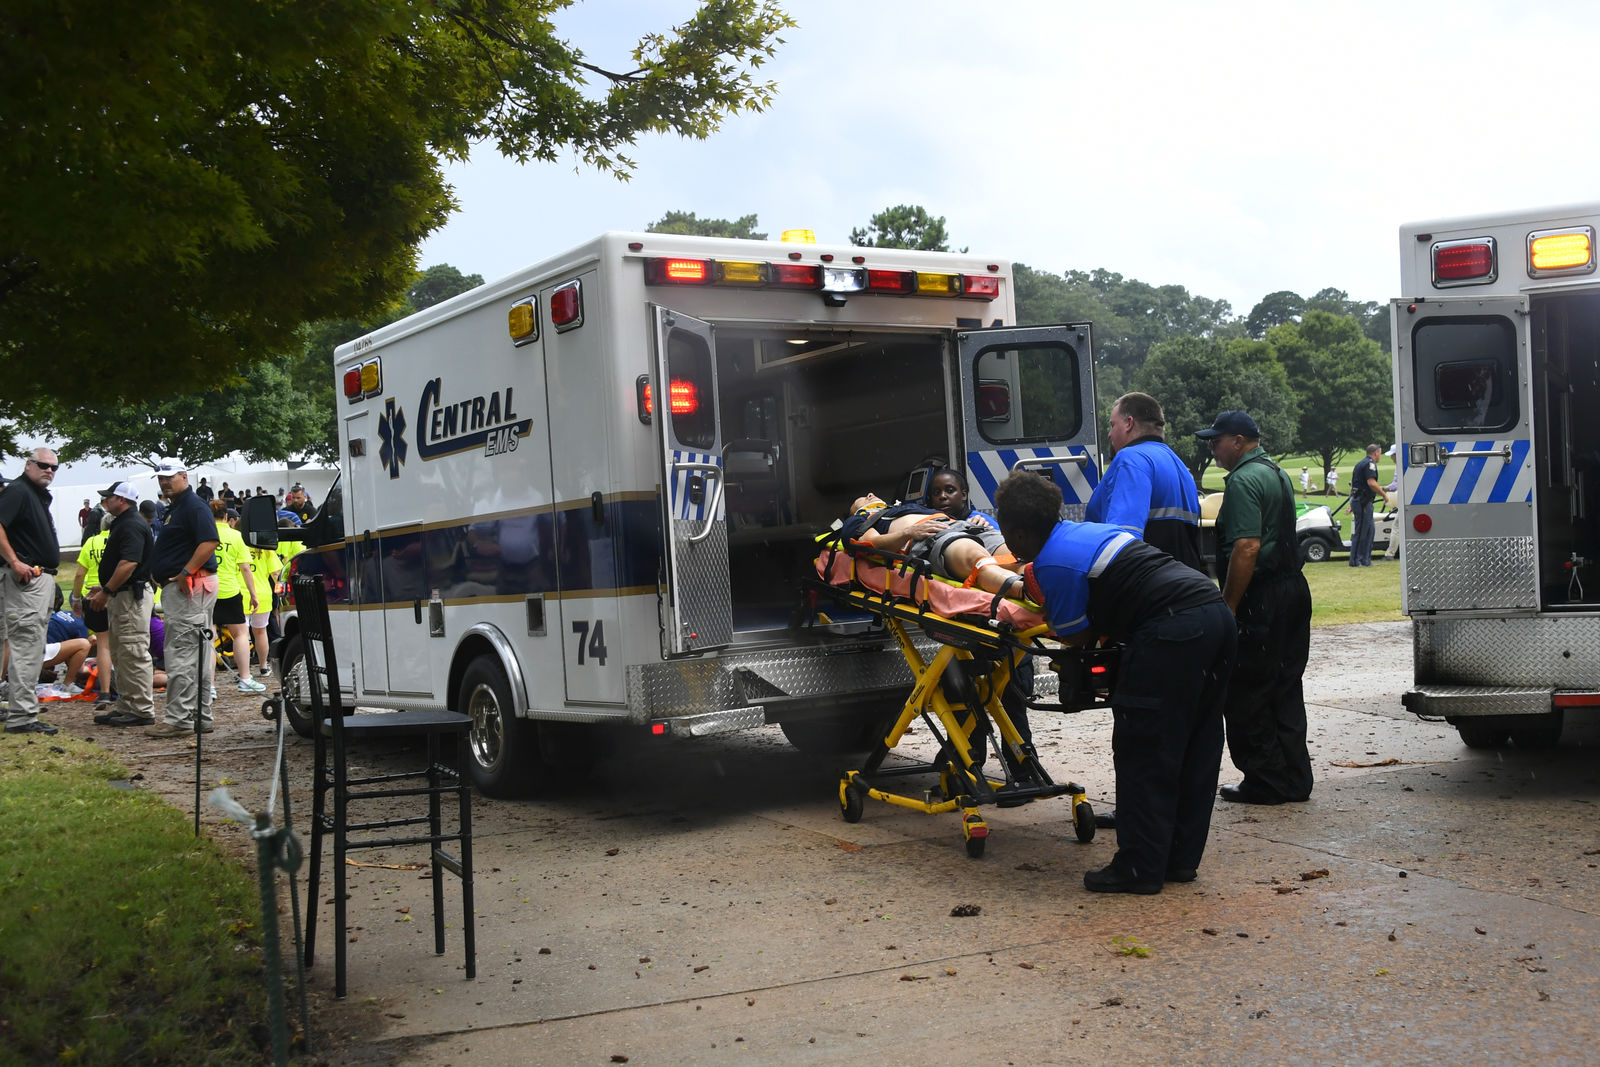 A spectator is taken to an ambulance after a lightning strike on the course which left several injured during a weather delay in the third round of the Tour Championship golf tournament Saturday, Aug. 24, 2019, in Atlanta. (AP Photo/John Amis)